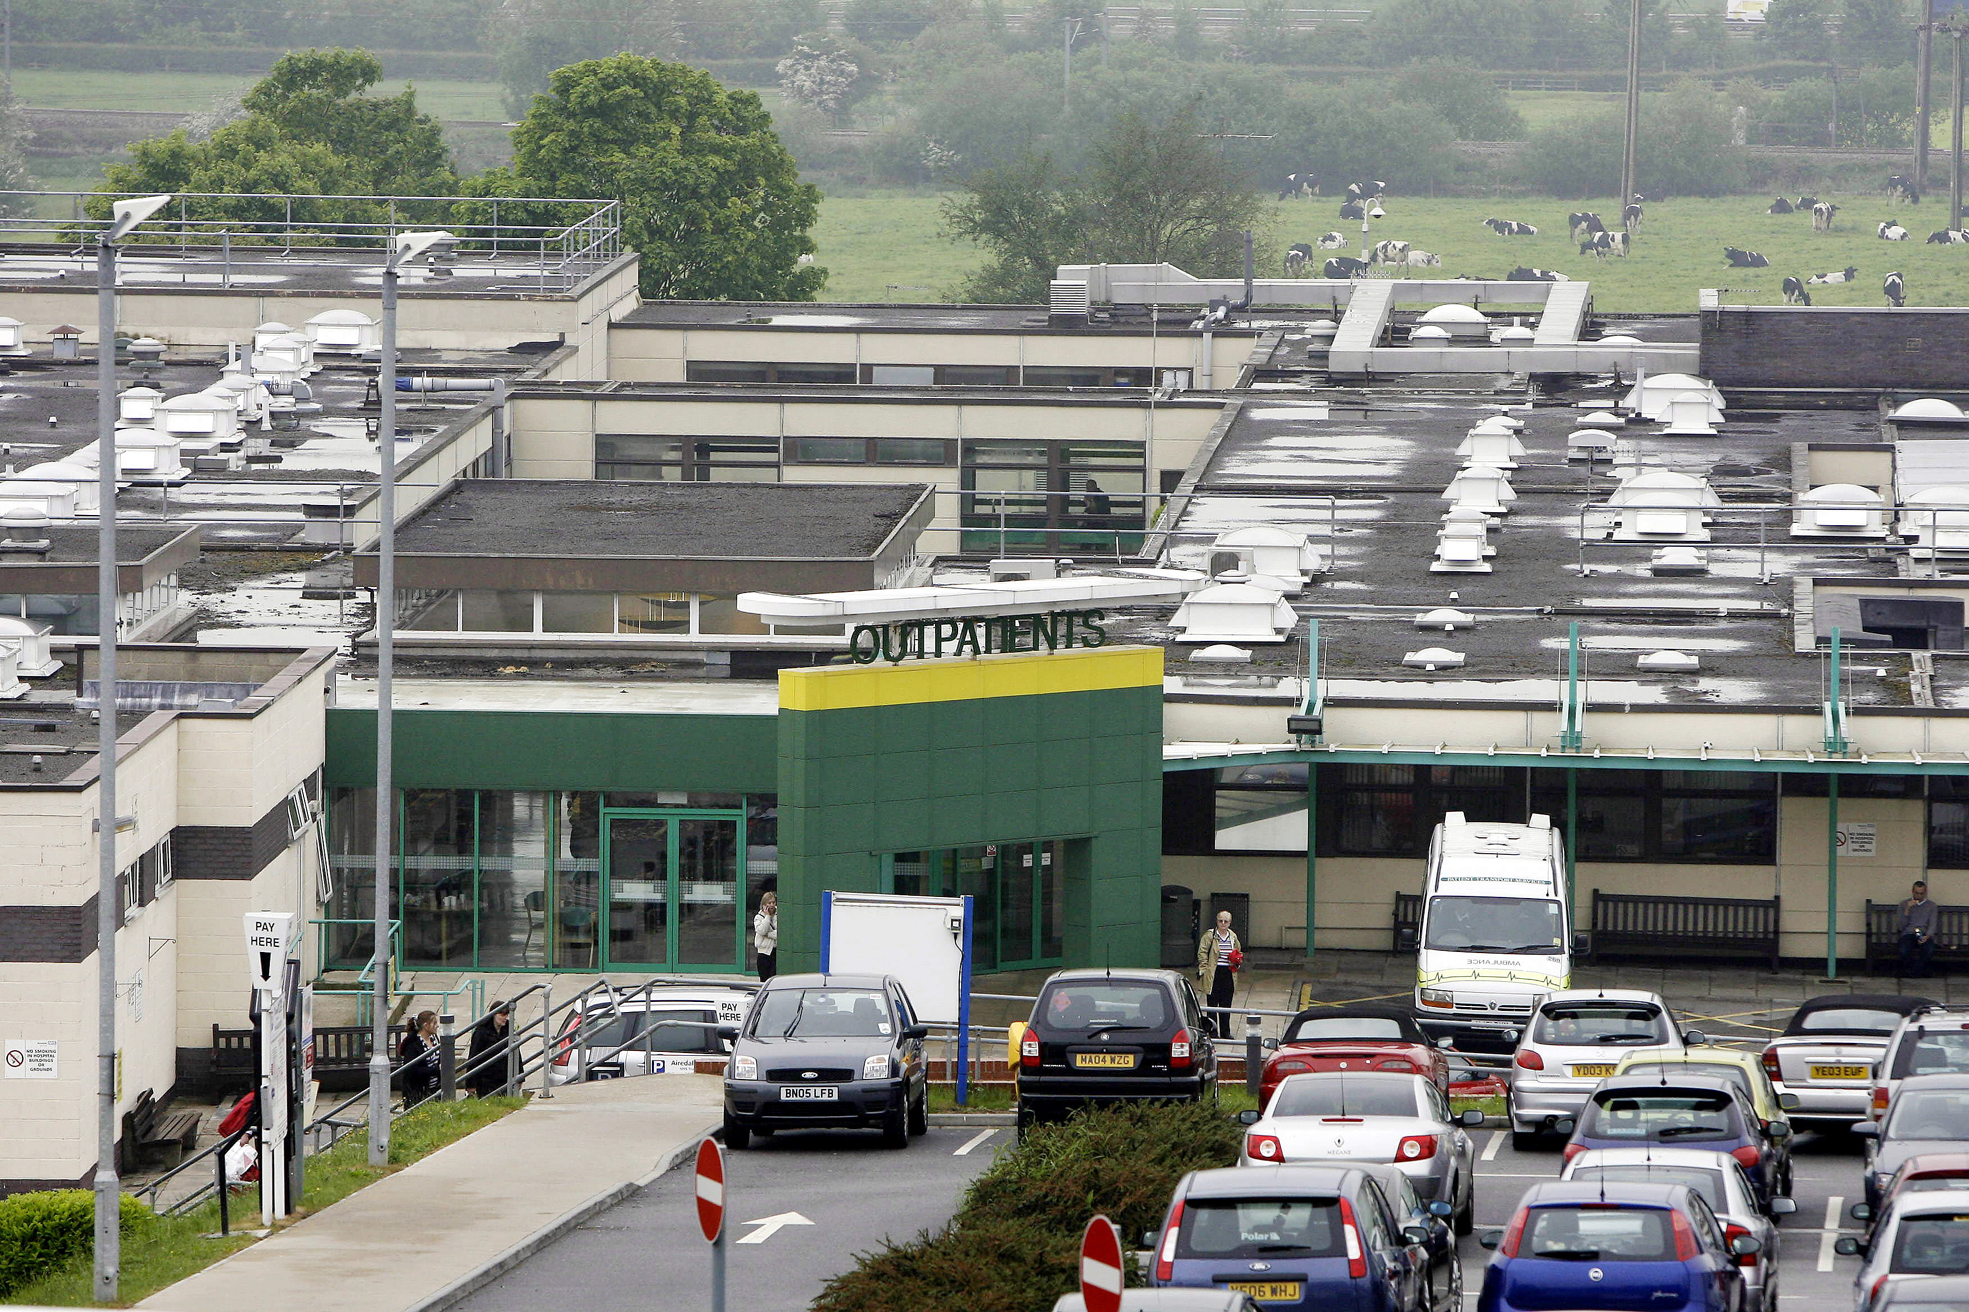 Airedale Hospital beats its 2012 score in staff survey